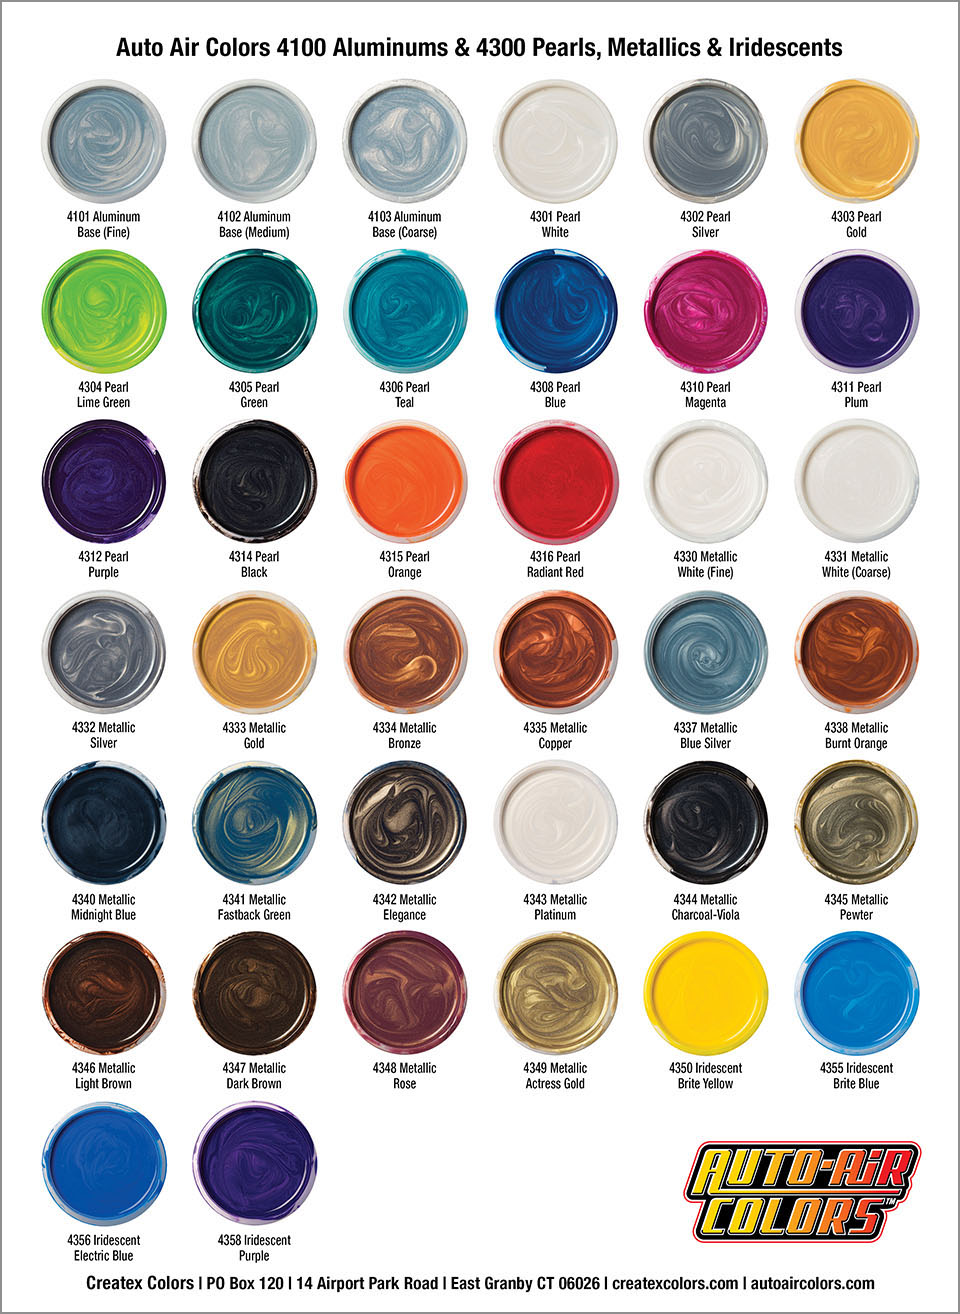 Automotive Paint Charts : automotive, paint, charts, Series, Pearlized, Colors,, Metallic, Colors, Iridescent